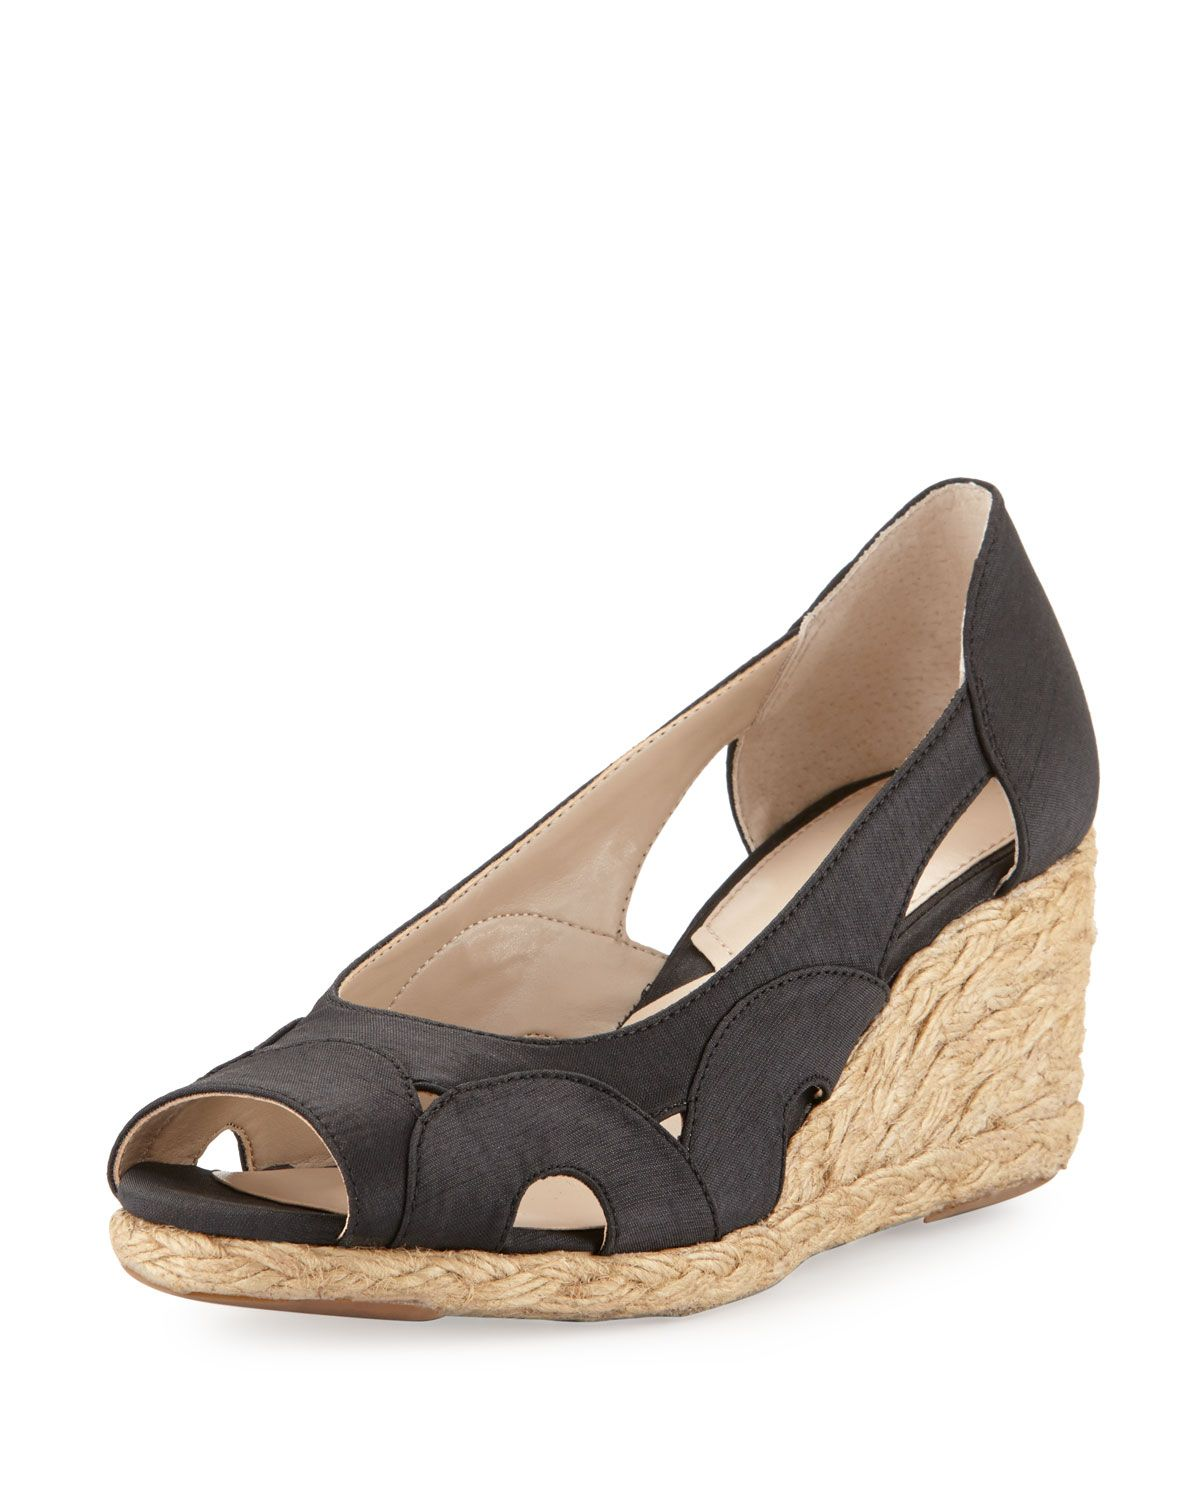 cheap sale professional outlet clearance store Adrienne Vittadini Cutout Slingback Sandals under $60 cheap price 8EmPa